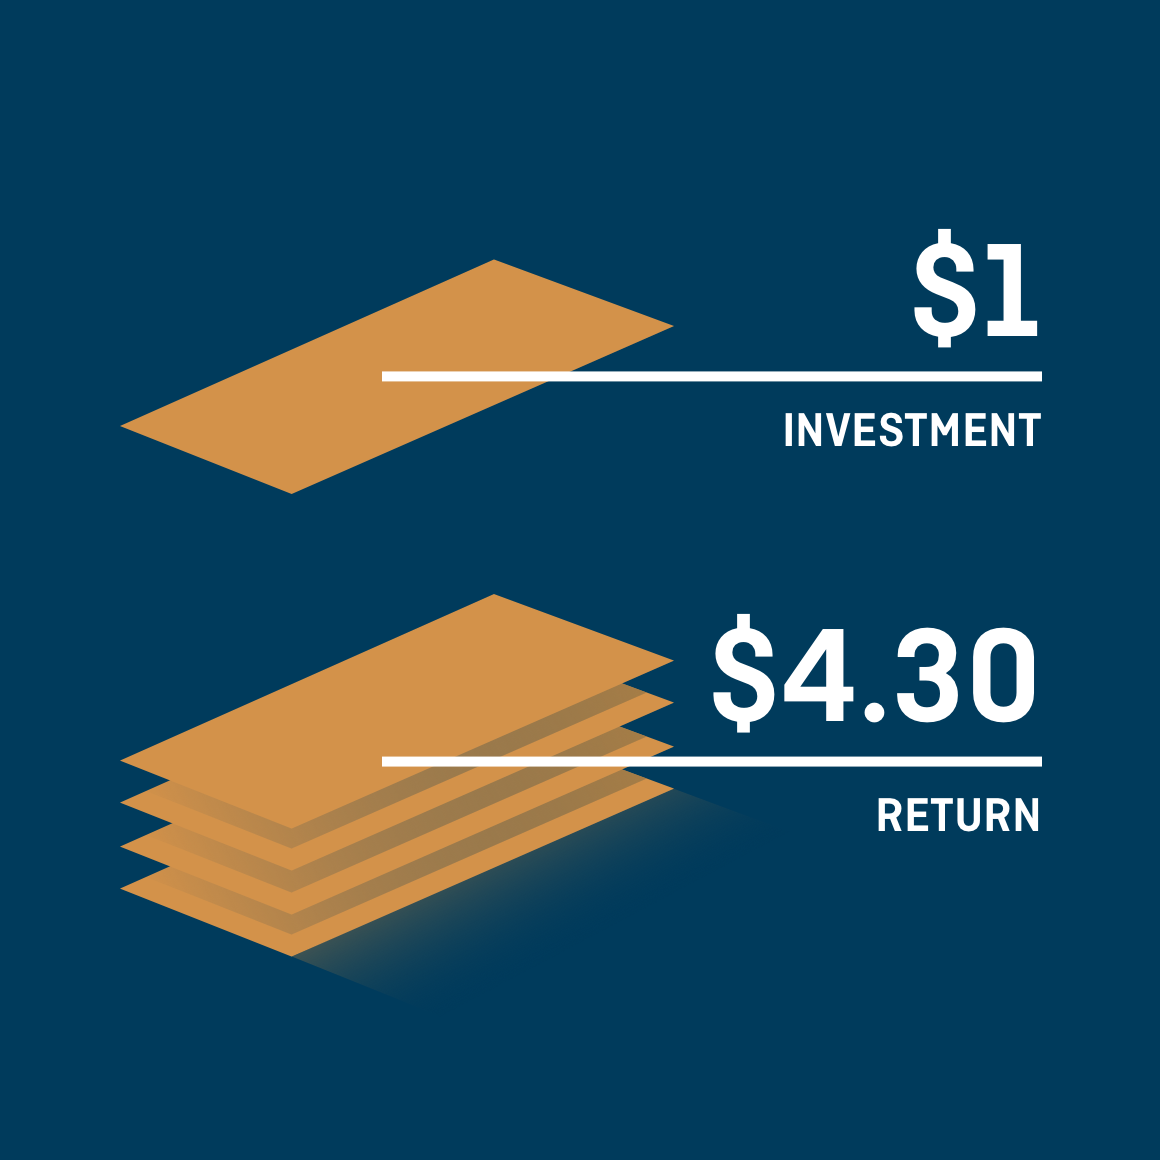 Graphic showing $3.30 return on investment